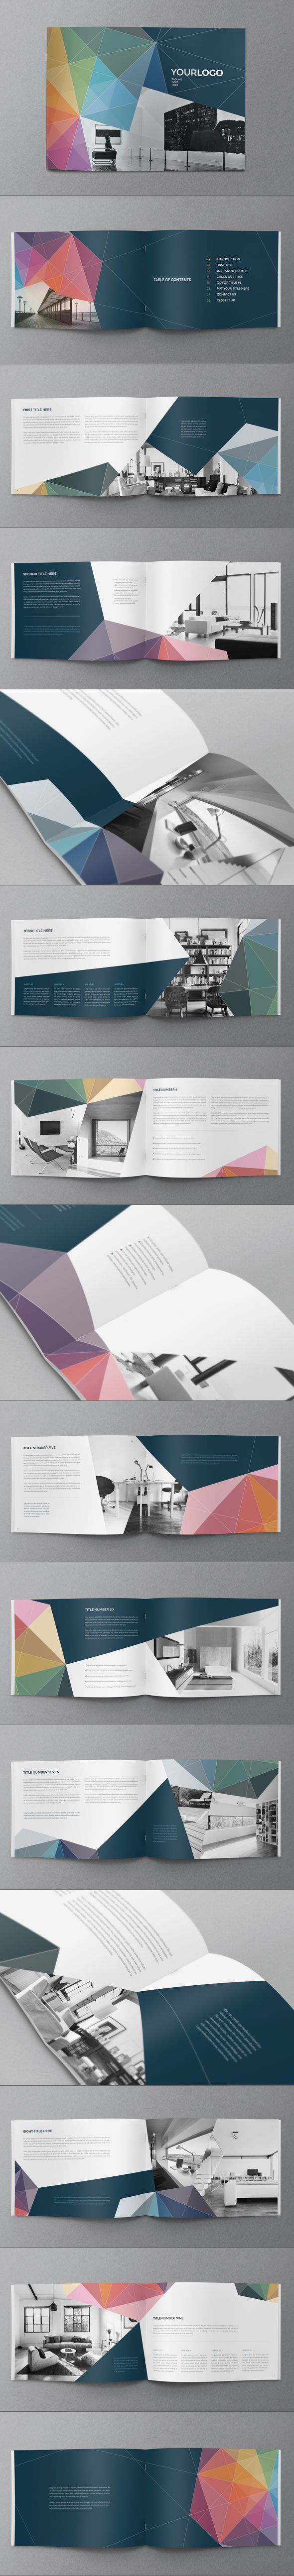 Multicolor Modern Brochure. Download here: http://graphicriver.net/item/multicolor-modern-brochure/7436397?ref=abradesign #design #brochure